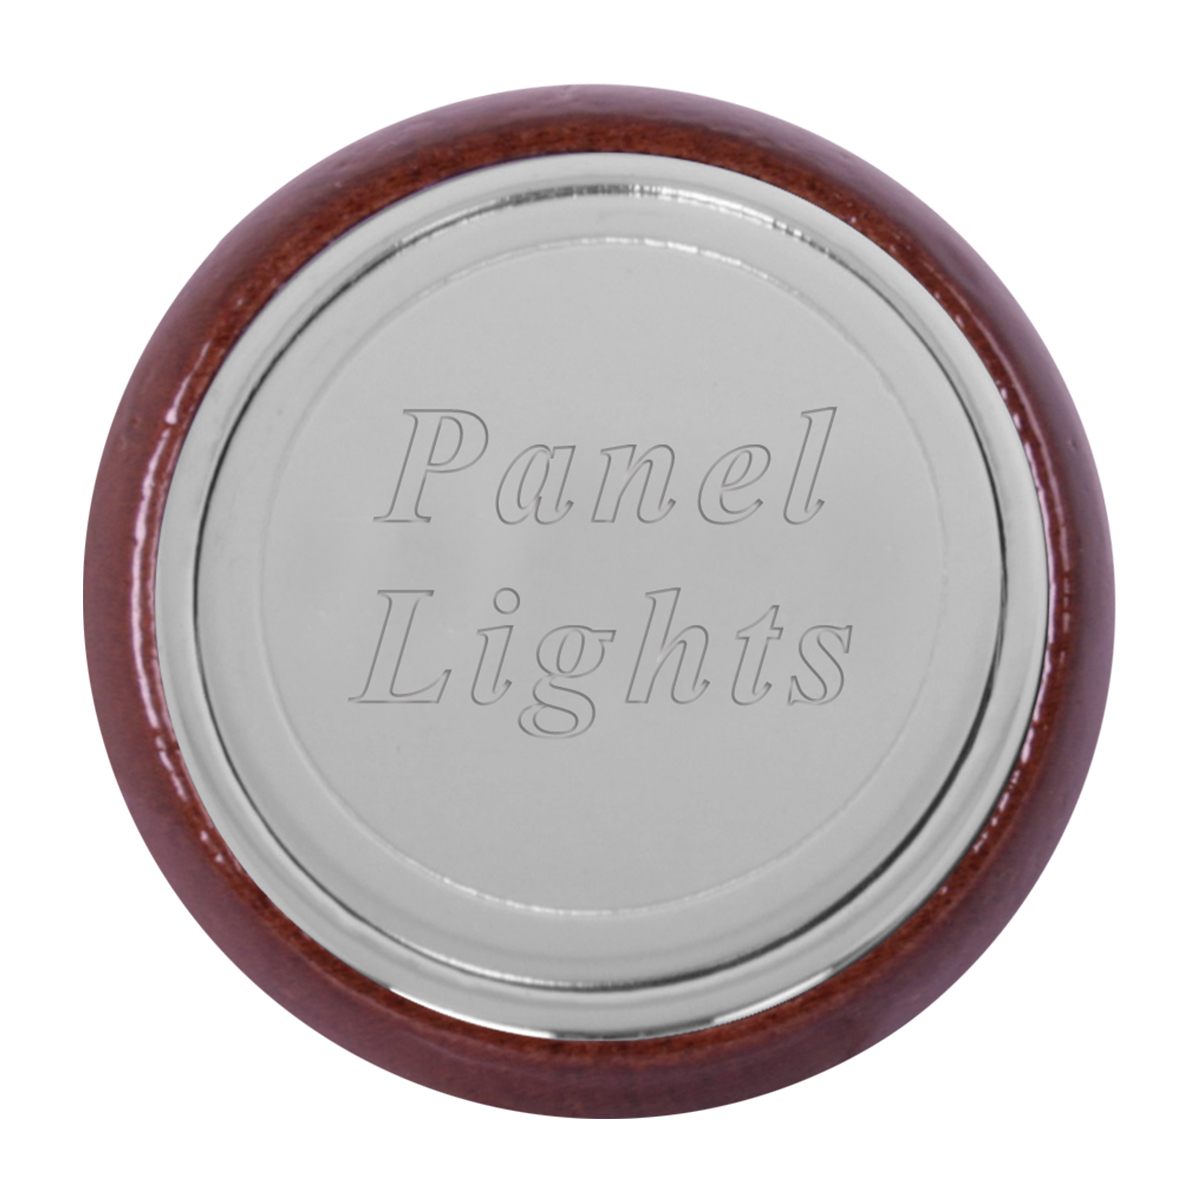 96031 Dashboard Control Knob w/ Panel Light Script